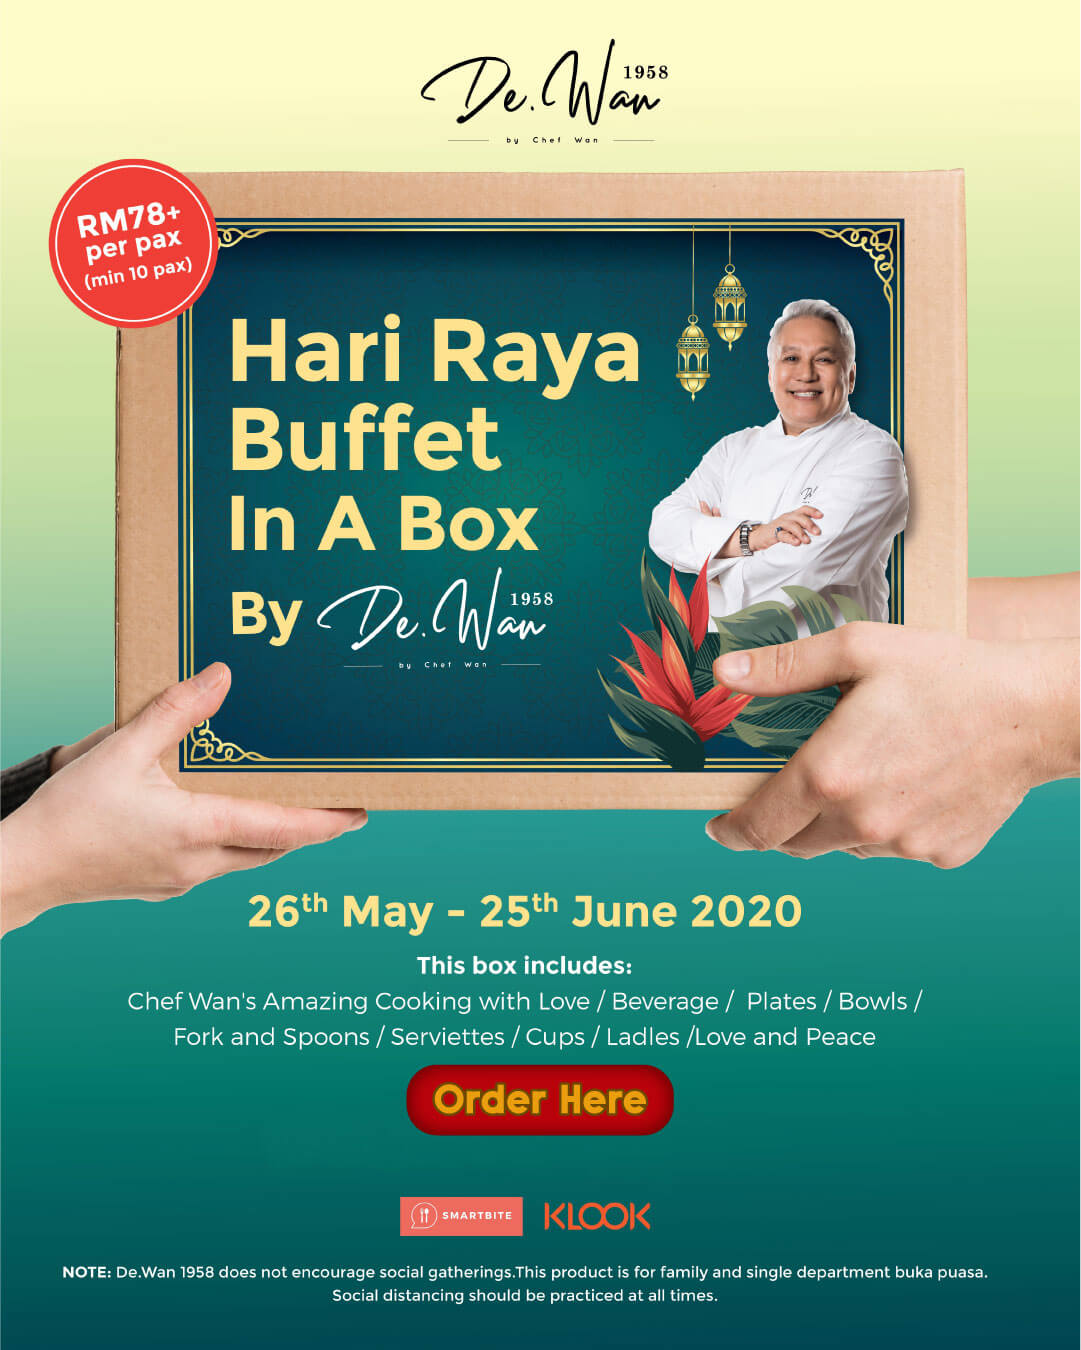 Hari Raya Buffet In A Box